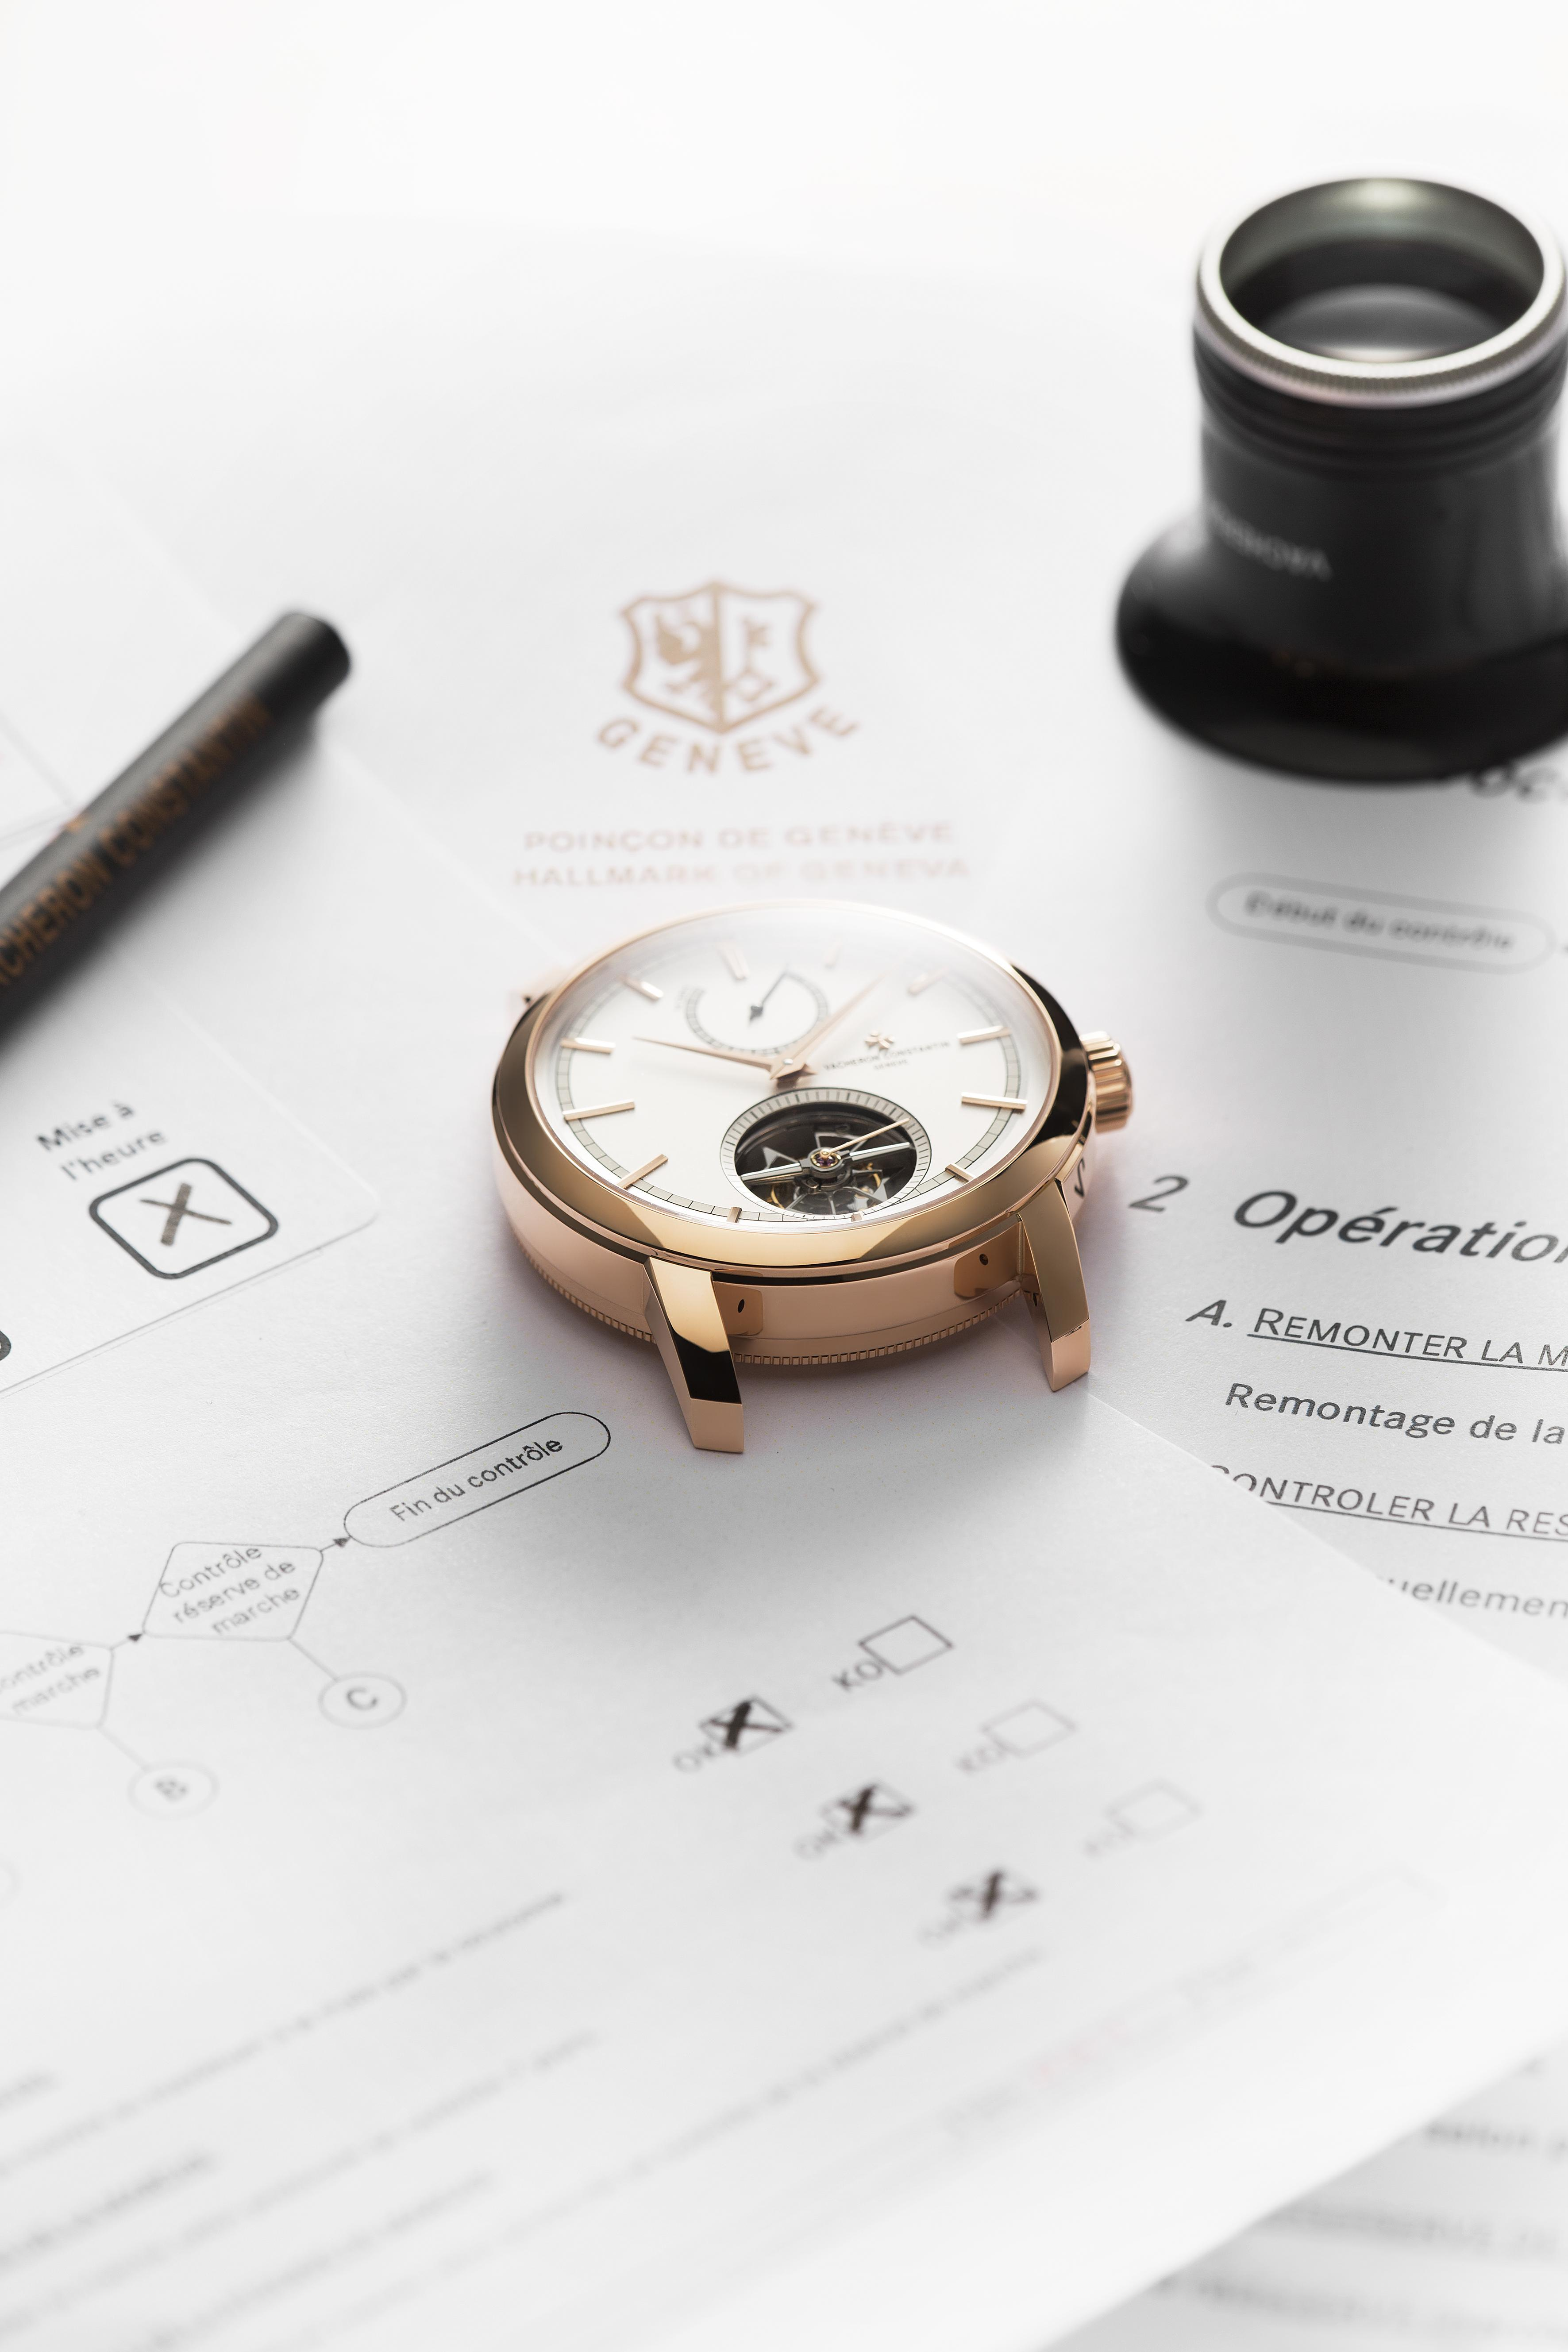 A timepiece and its test results.